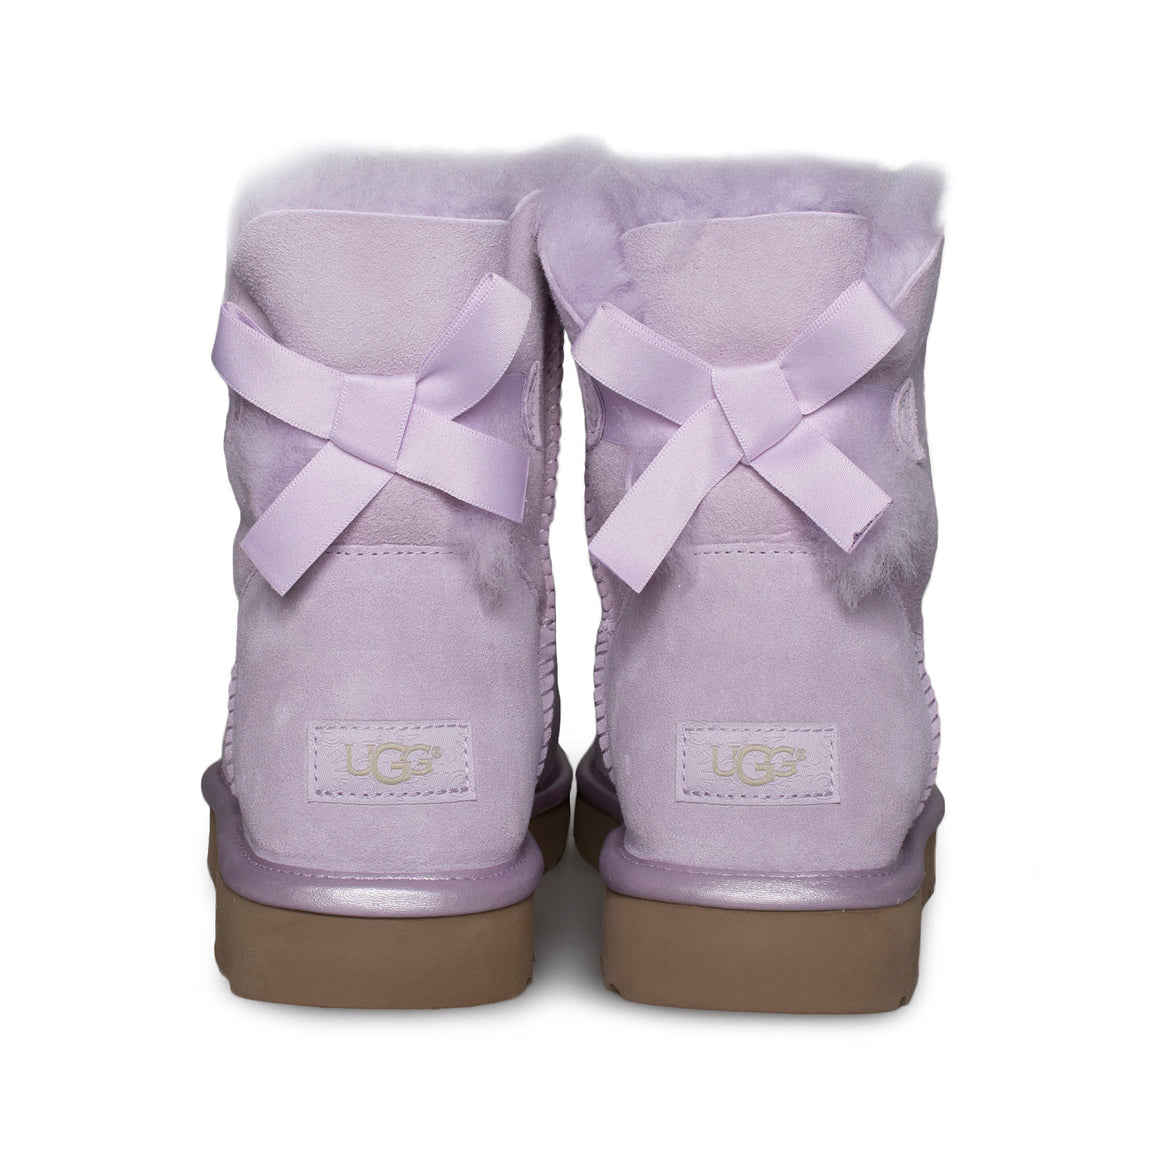 UGG Mini Bailey Bow II Metallic Lavender Fog Boots - Women's